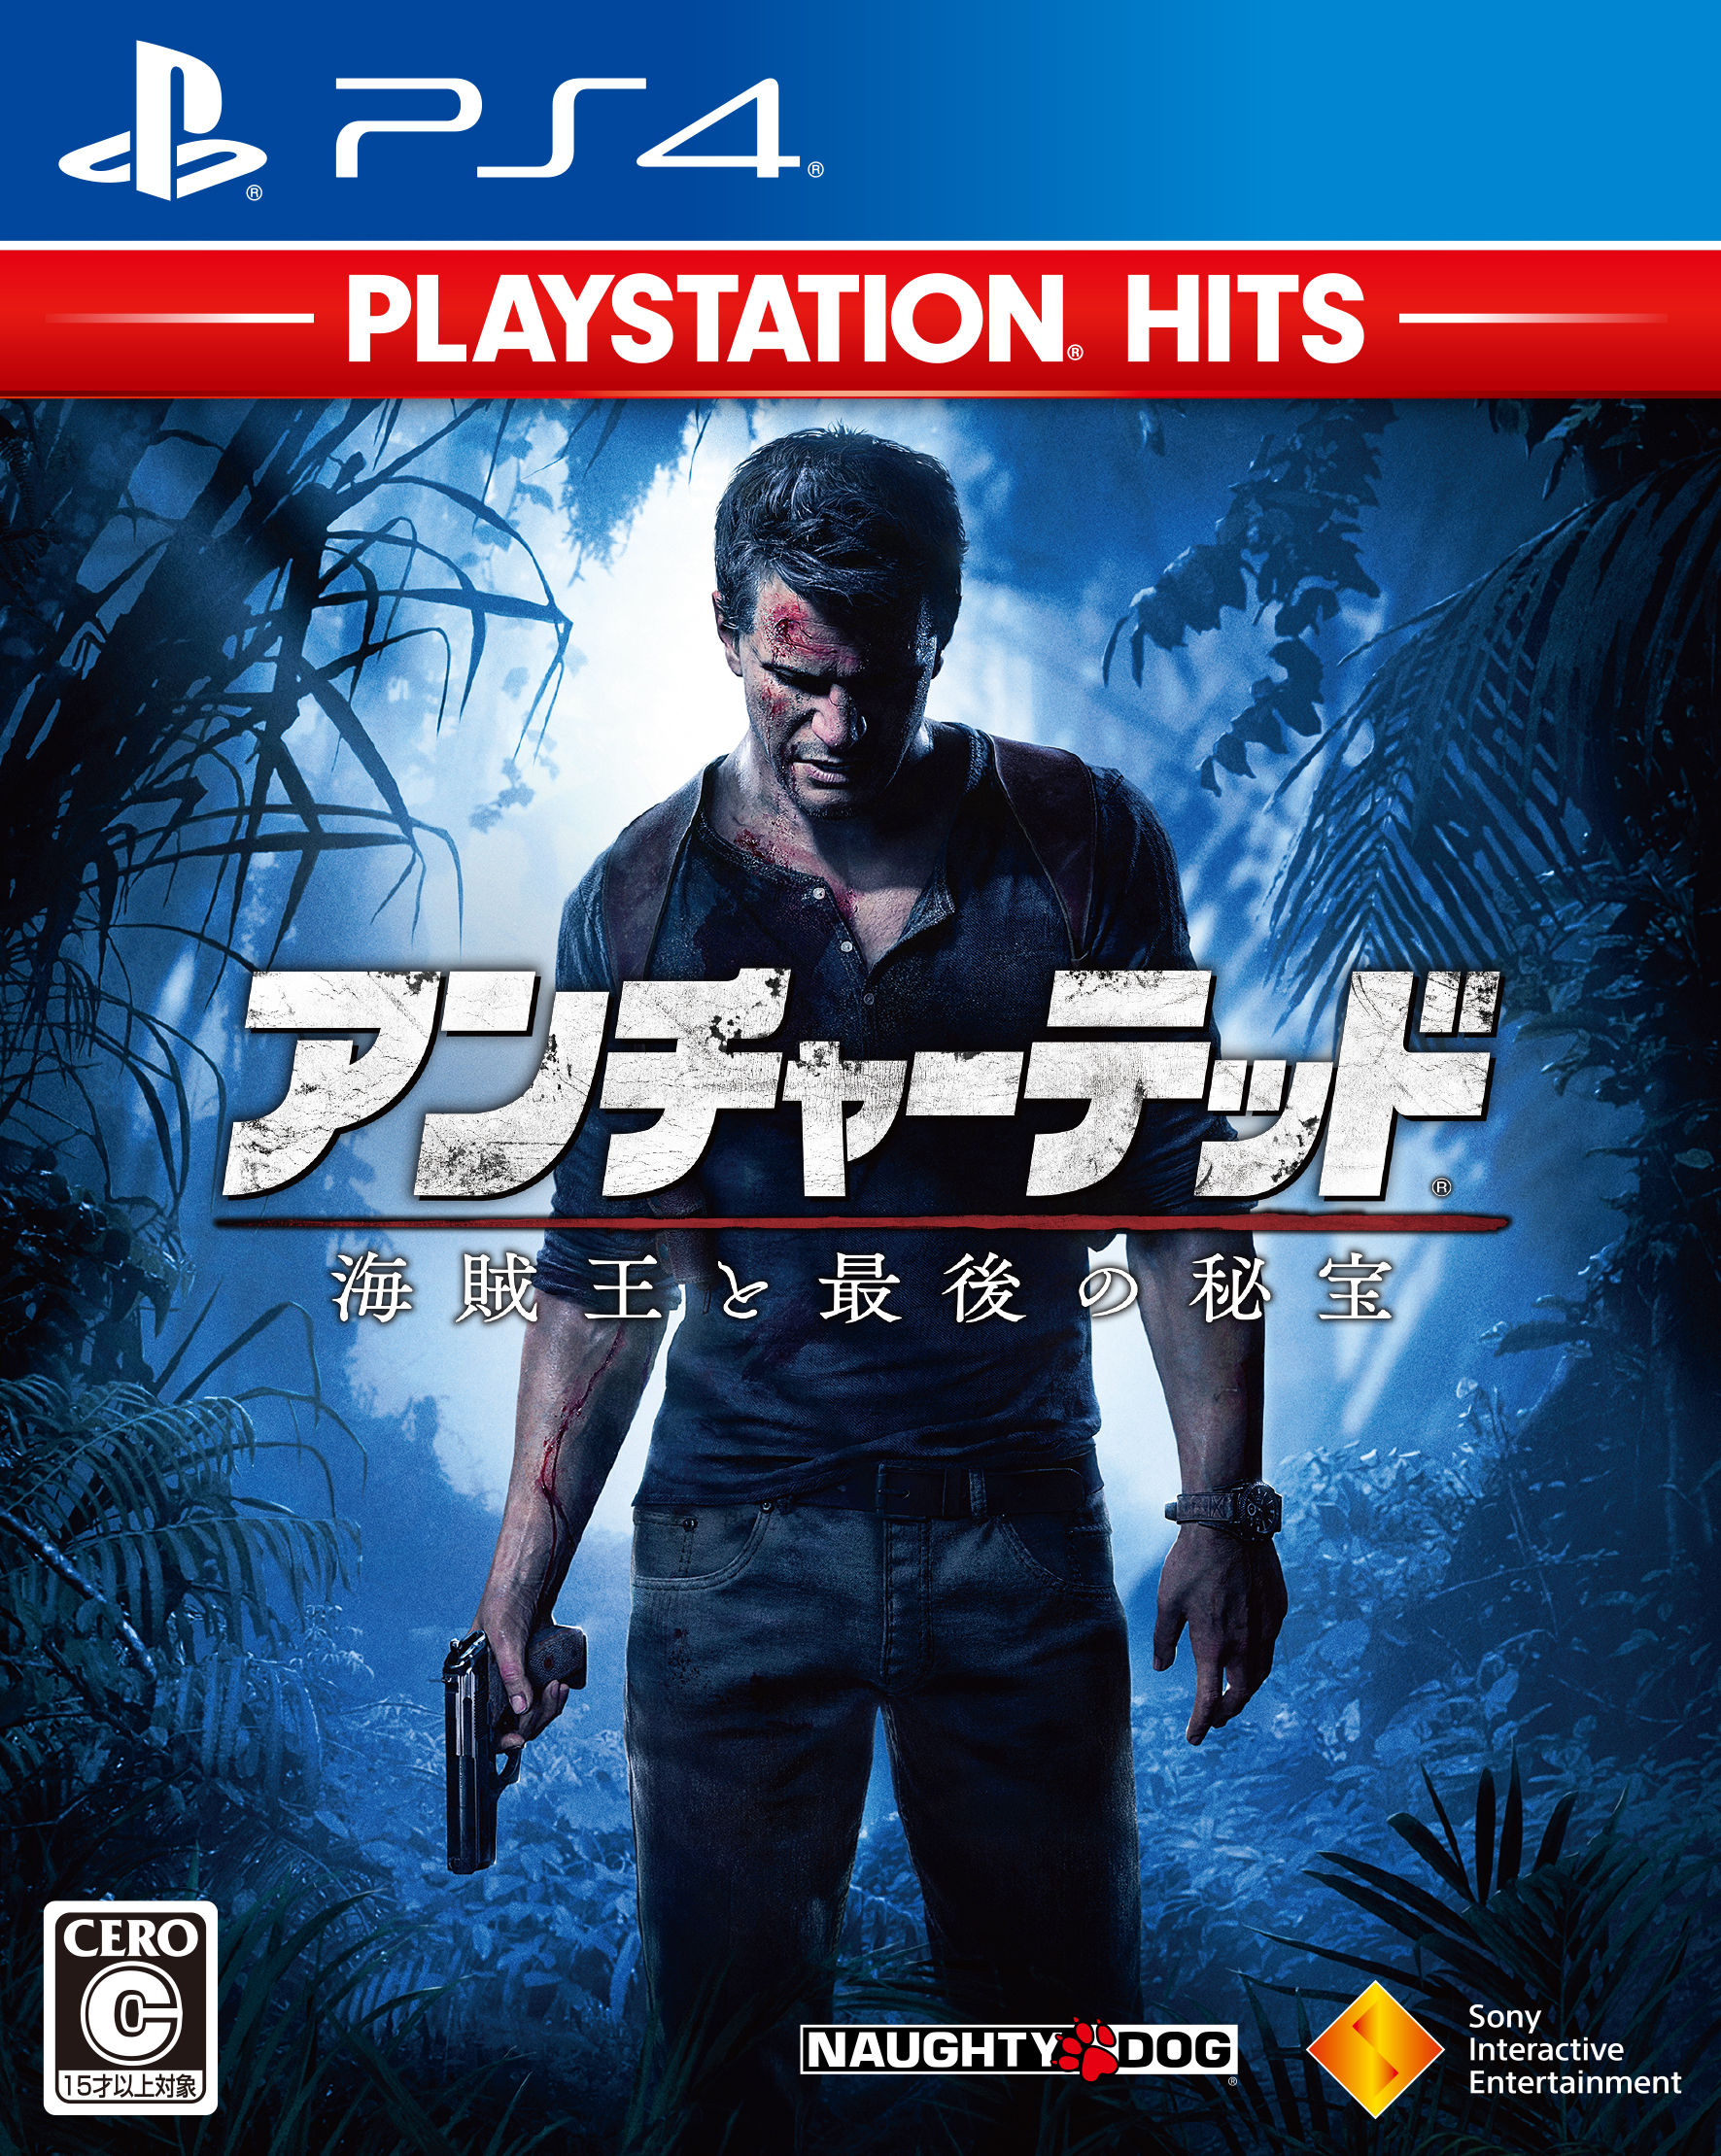 """<strong class=""""em """">「アンチャーテッド海賊王と最後の秘宝PlayStation Hits」</strong>/SIE"""